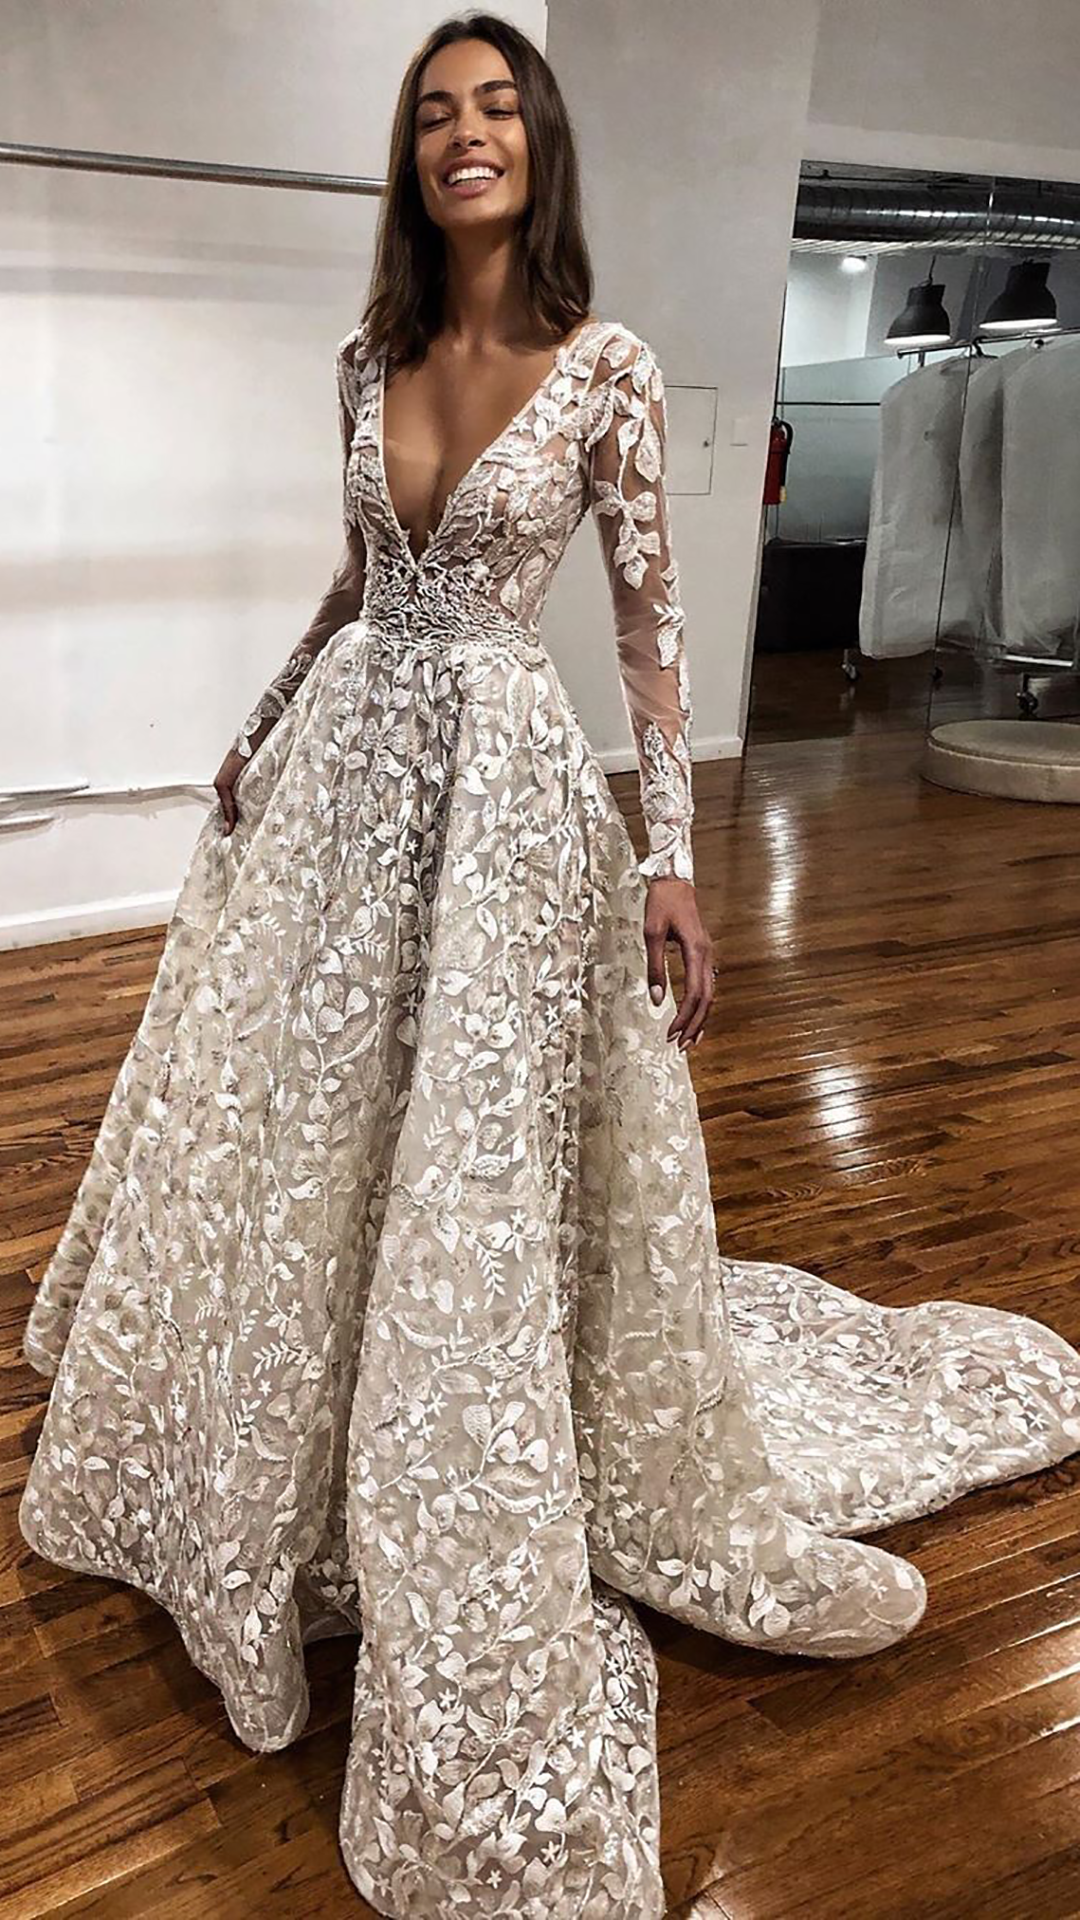 A-Line Wedding Dresses 2020 Collections Overview – Wedding Dresses